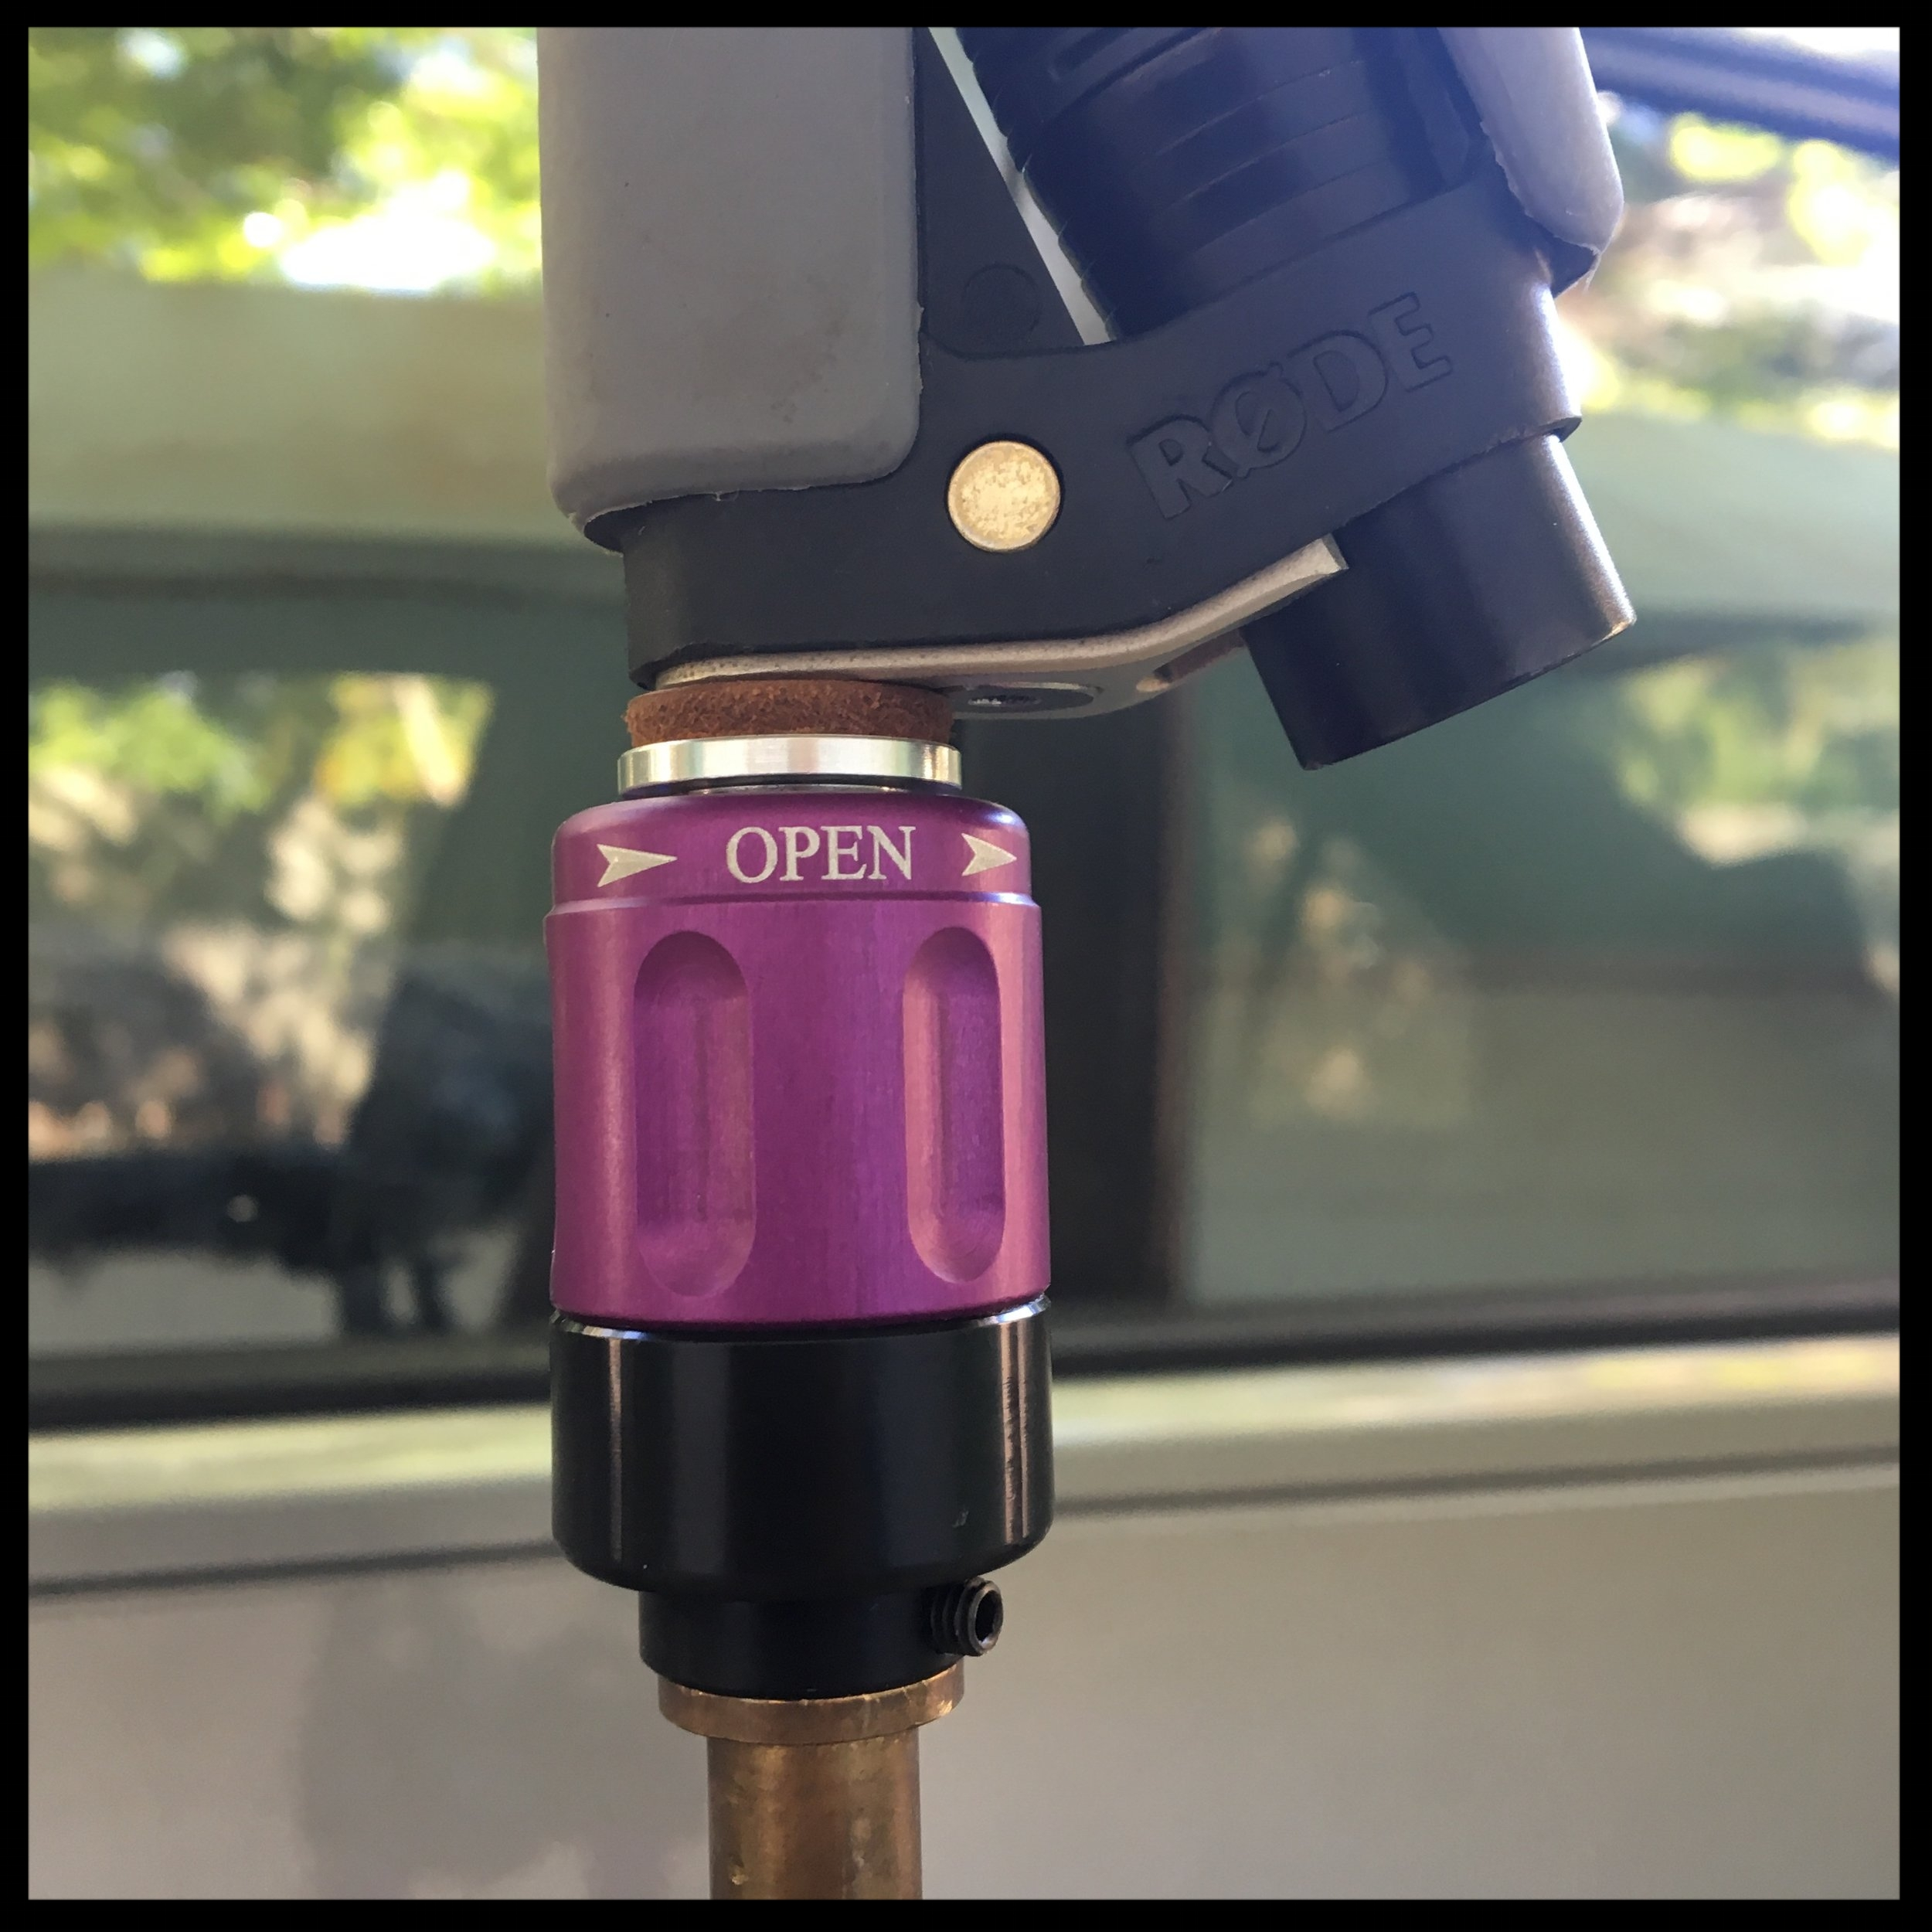 QuickLock from Ambient Recording company